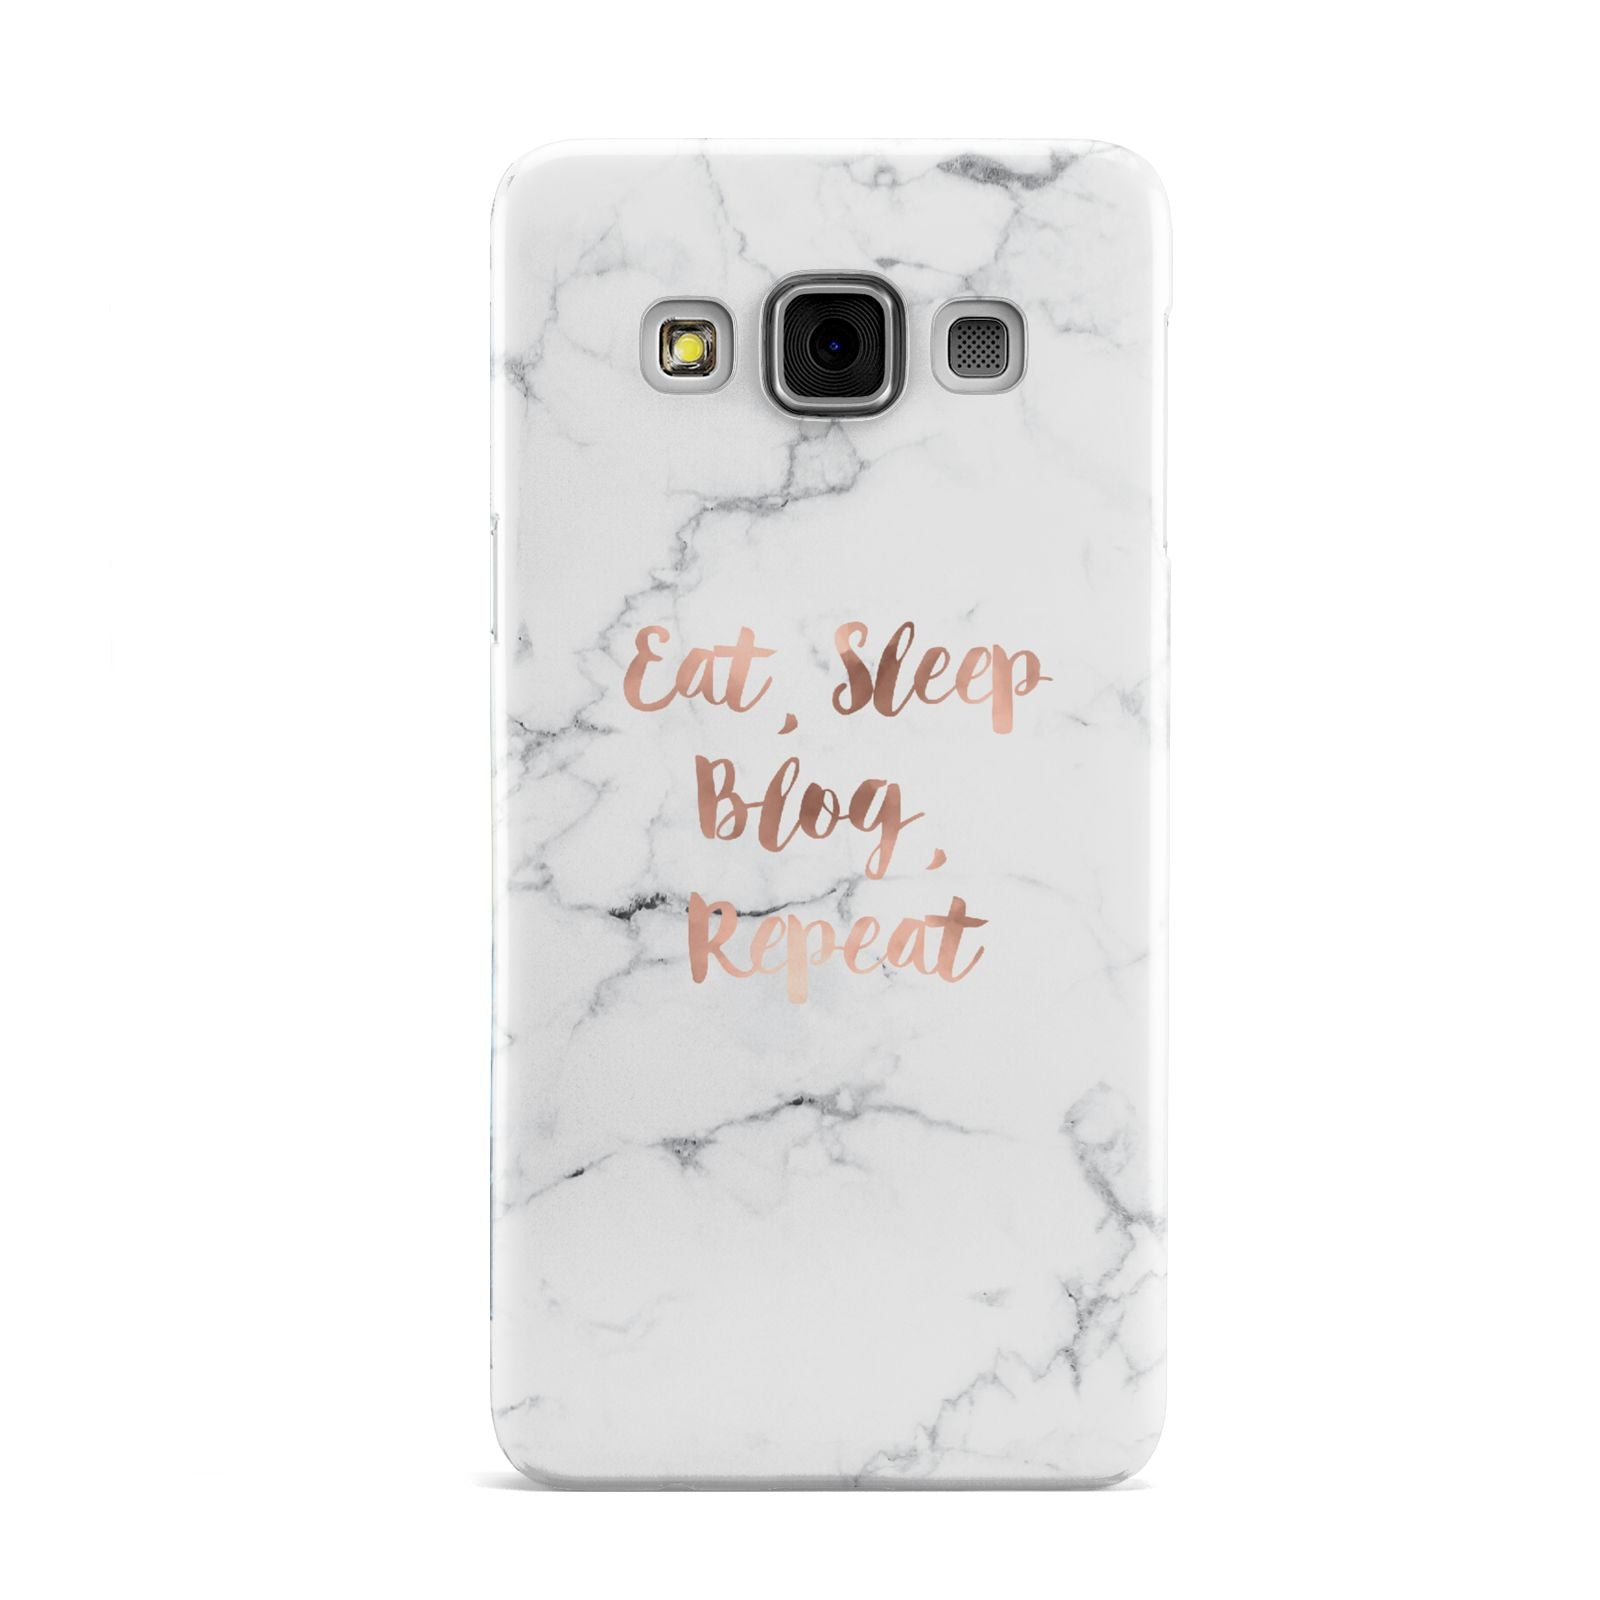 Eat Sleep Blog Repeat Marble Effect Samsung Galaxy A3 Case